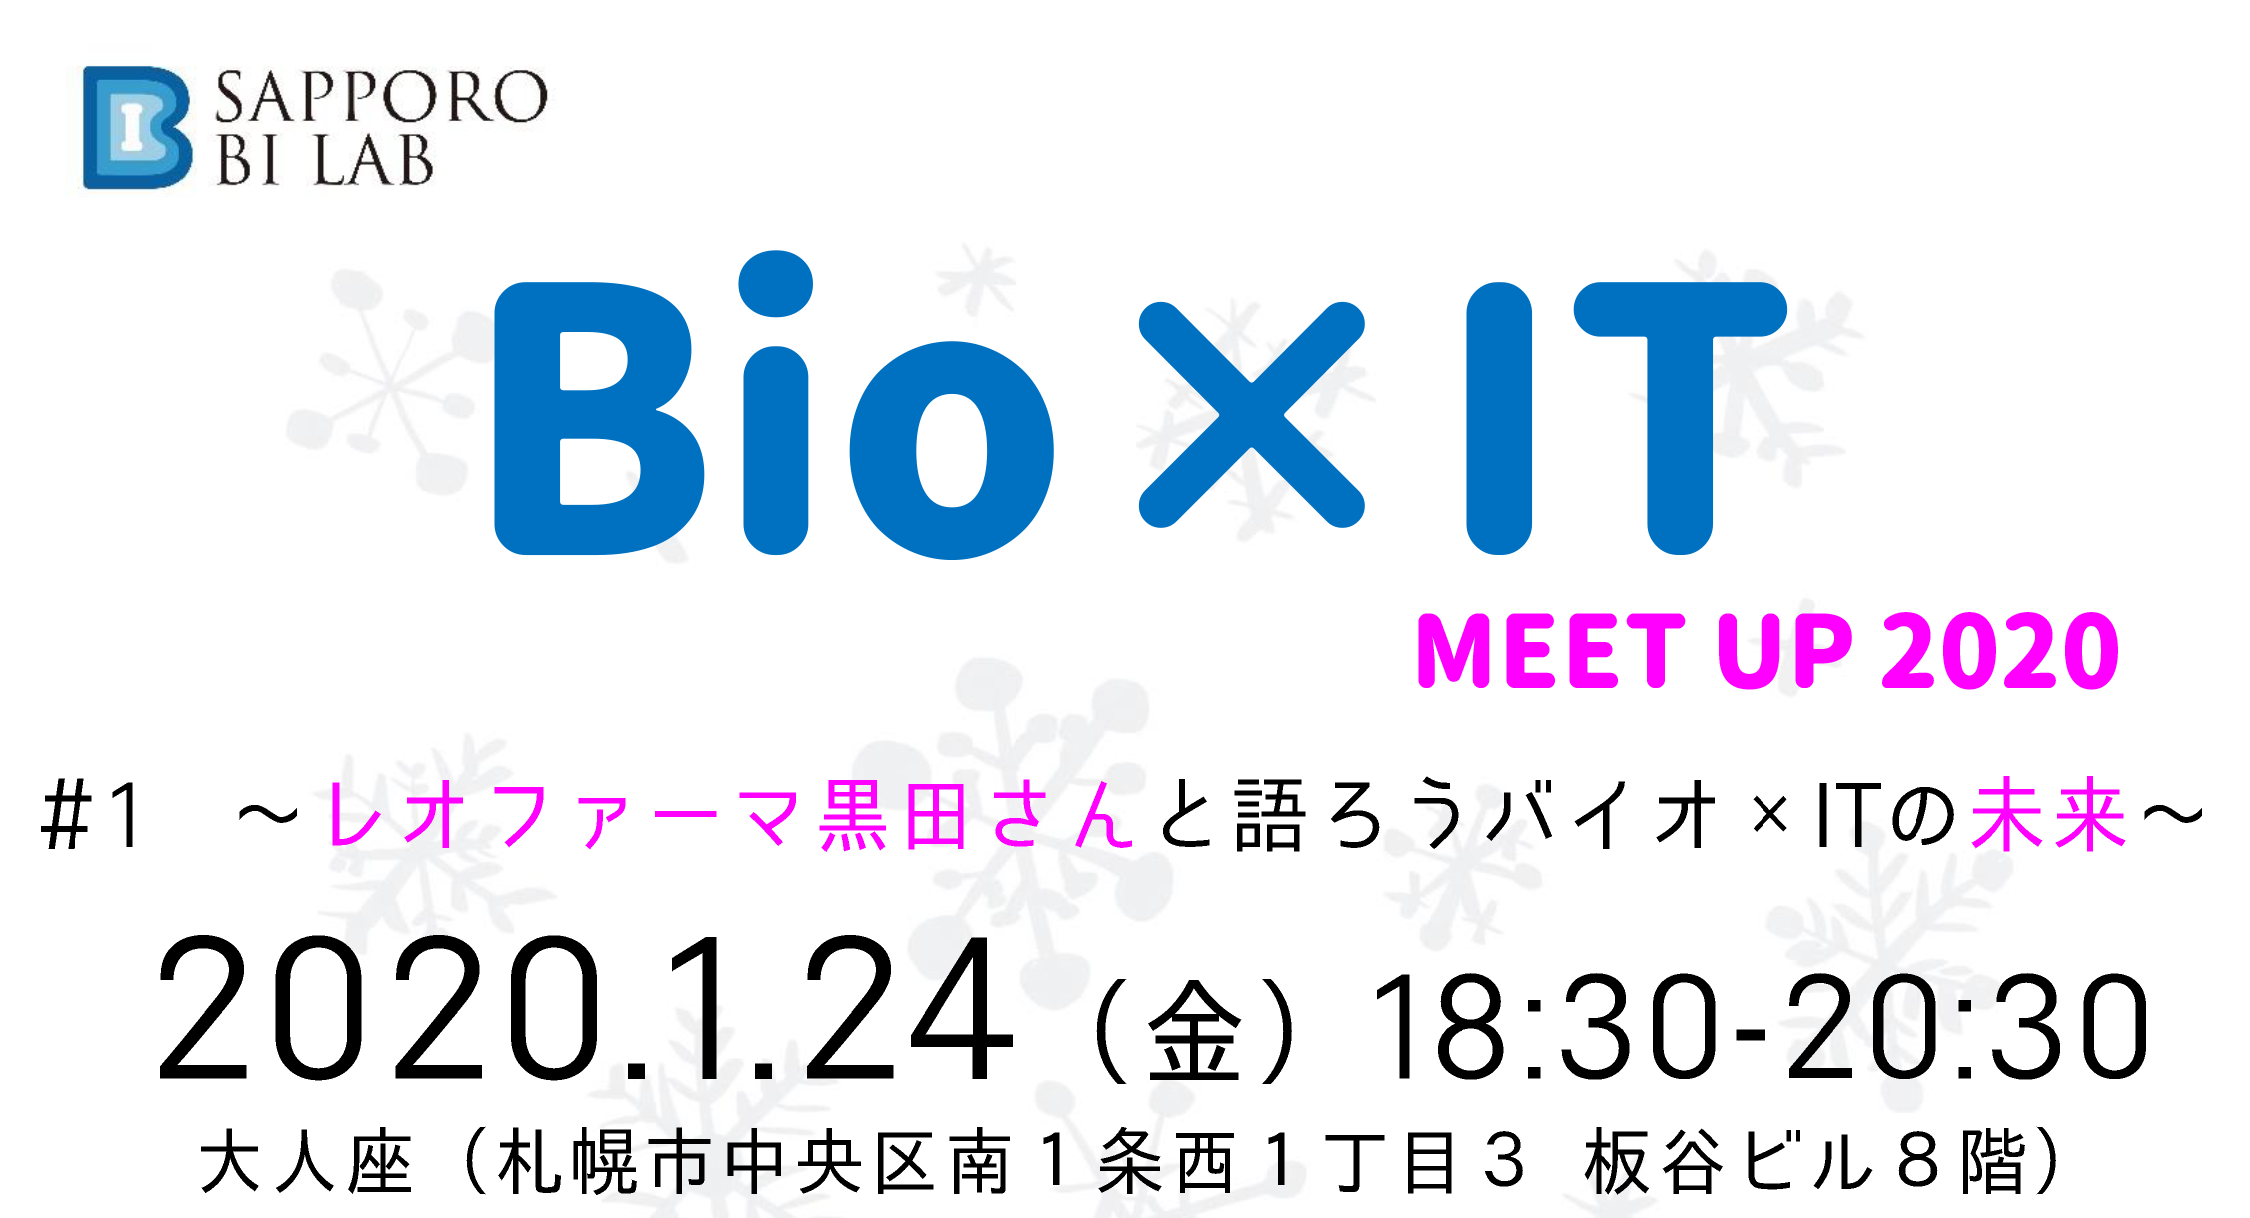 Bio x IT|Sapporo BI LAB|Meetup 2020 #1 開催のご案内